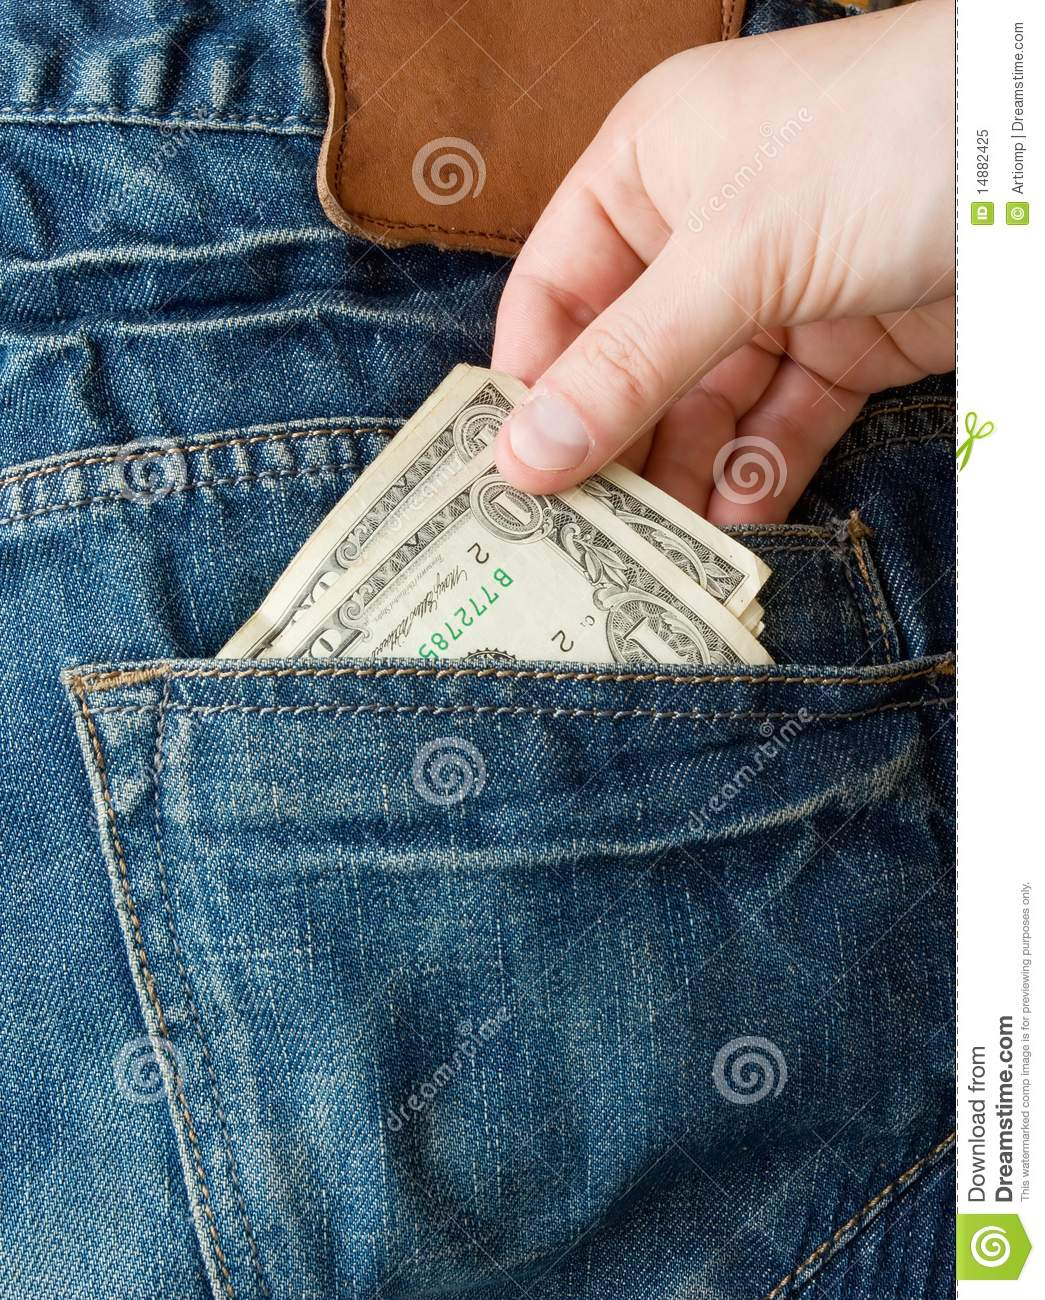 Stealing Money From Back Pocket Royalty Free Stock Photo ...